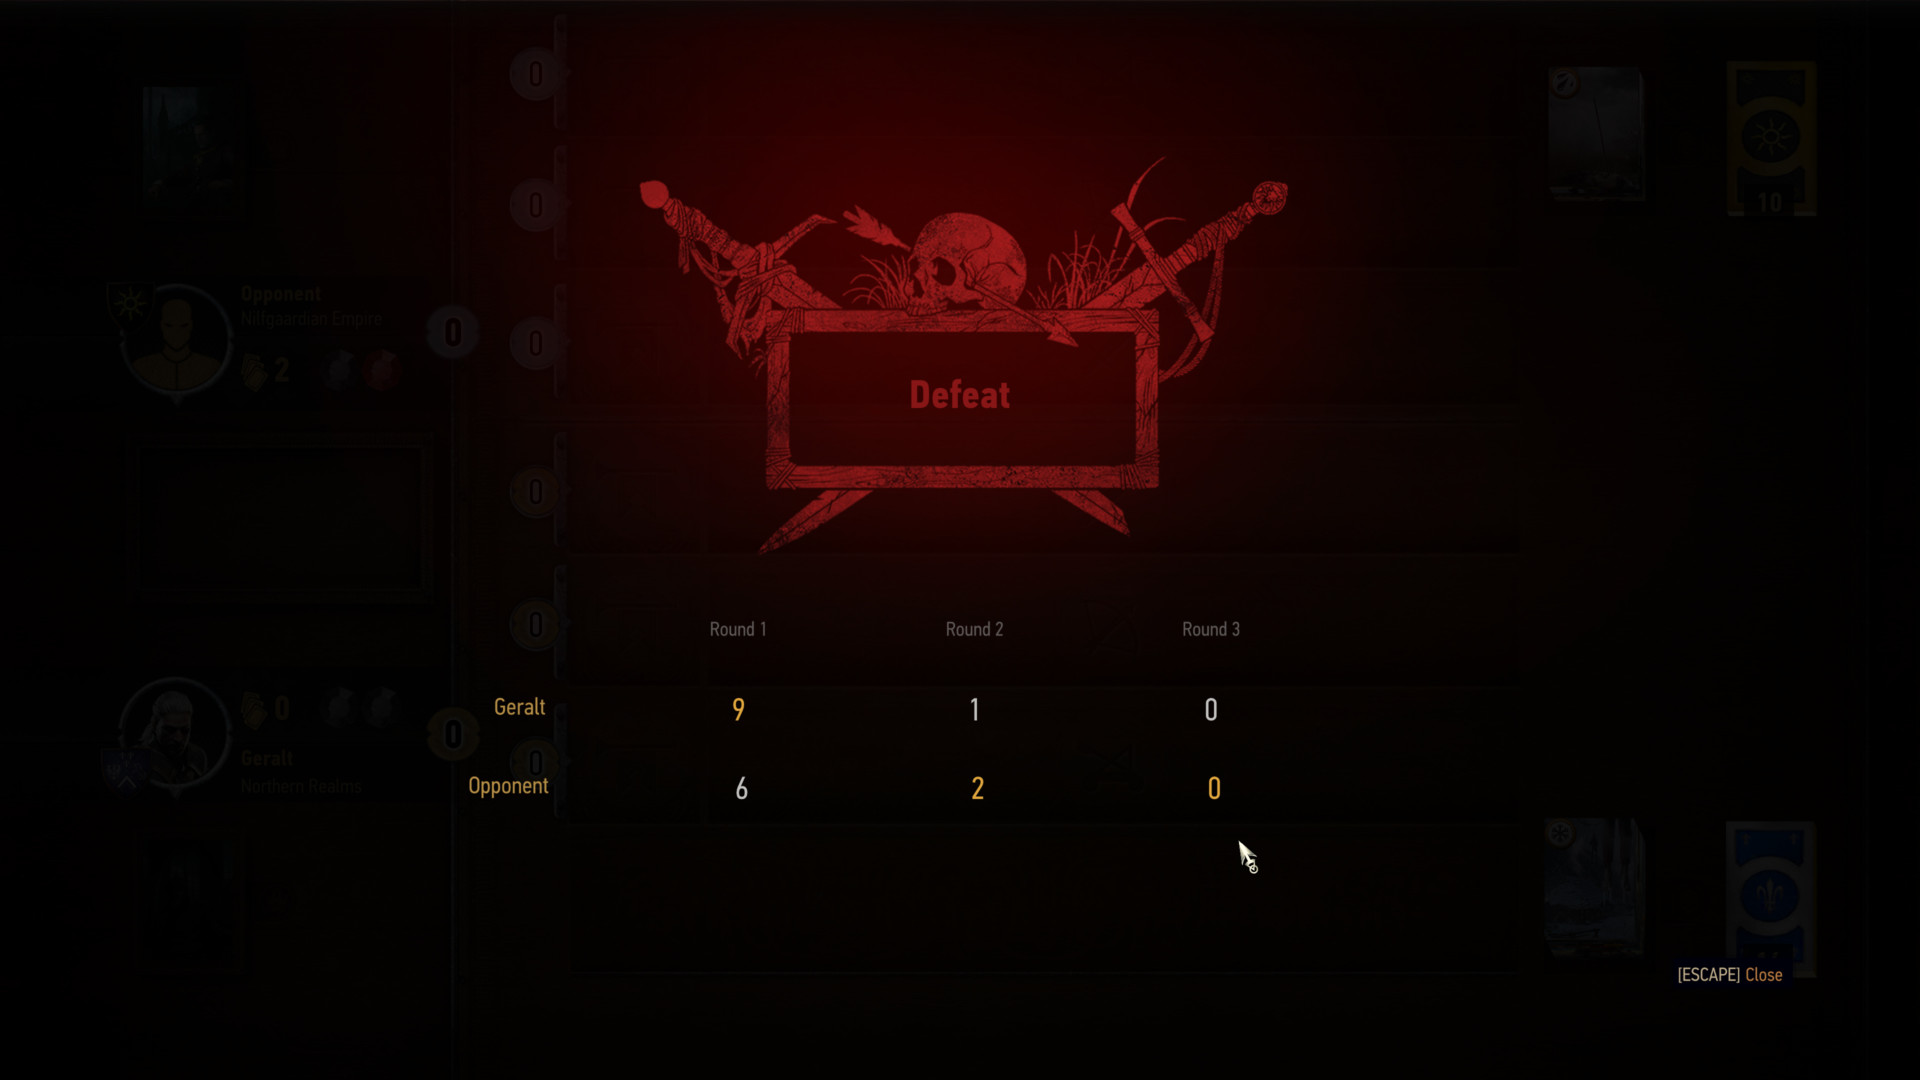 Defeat screenshot of The Witcher 3: Wild Hunt video game interface.